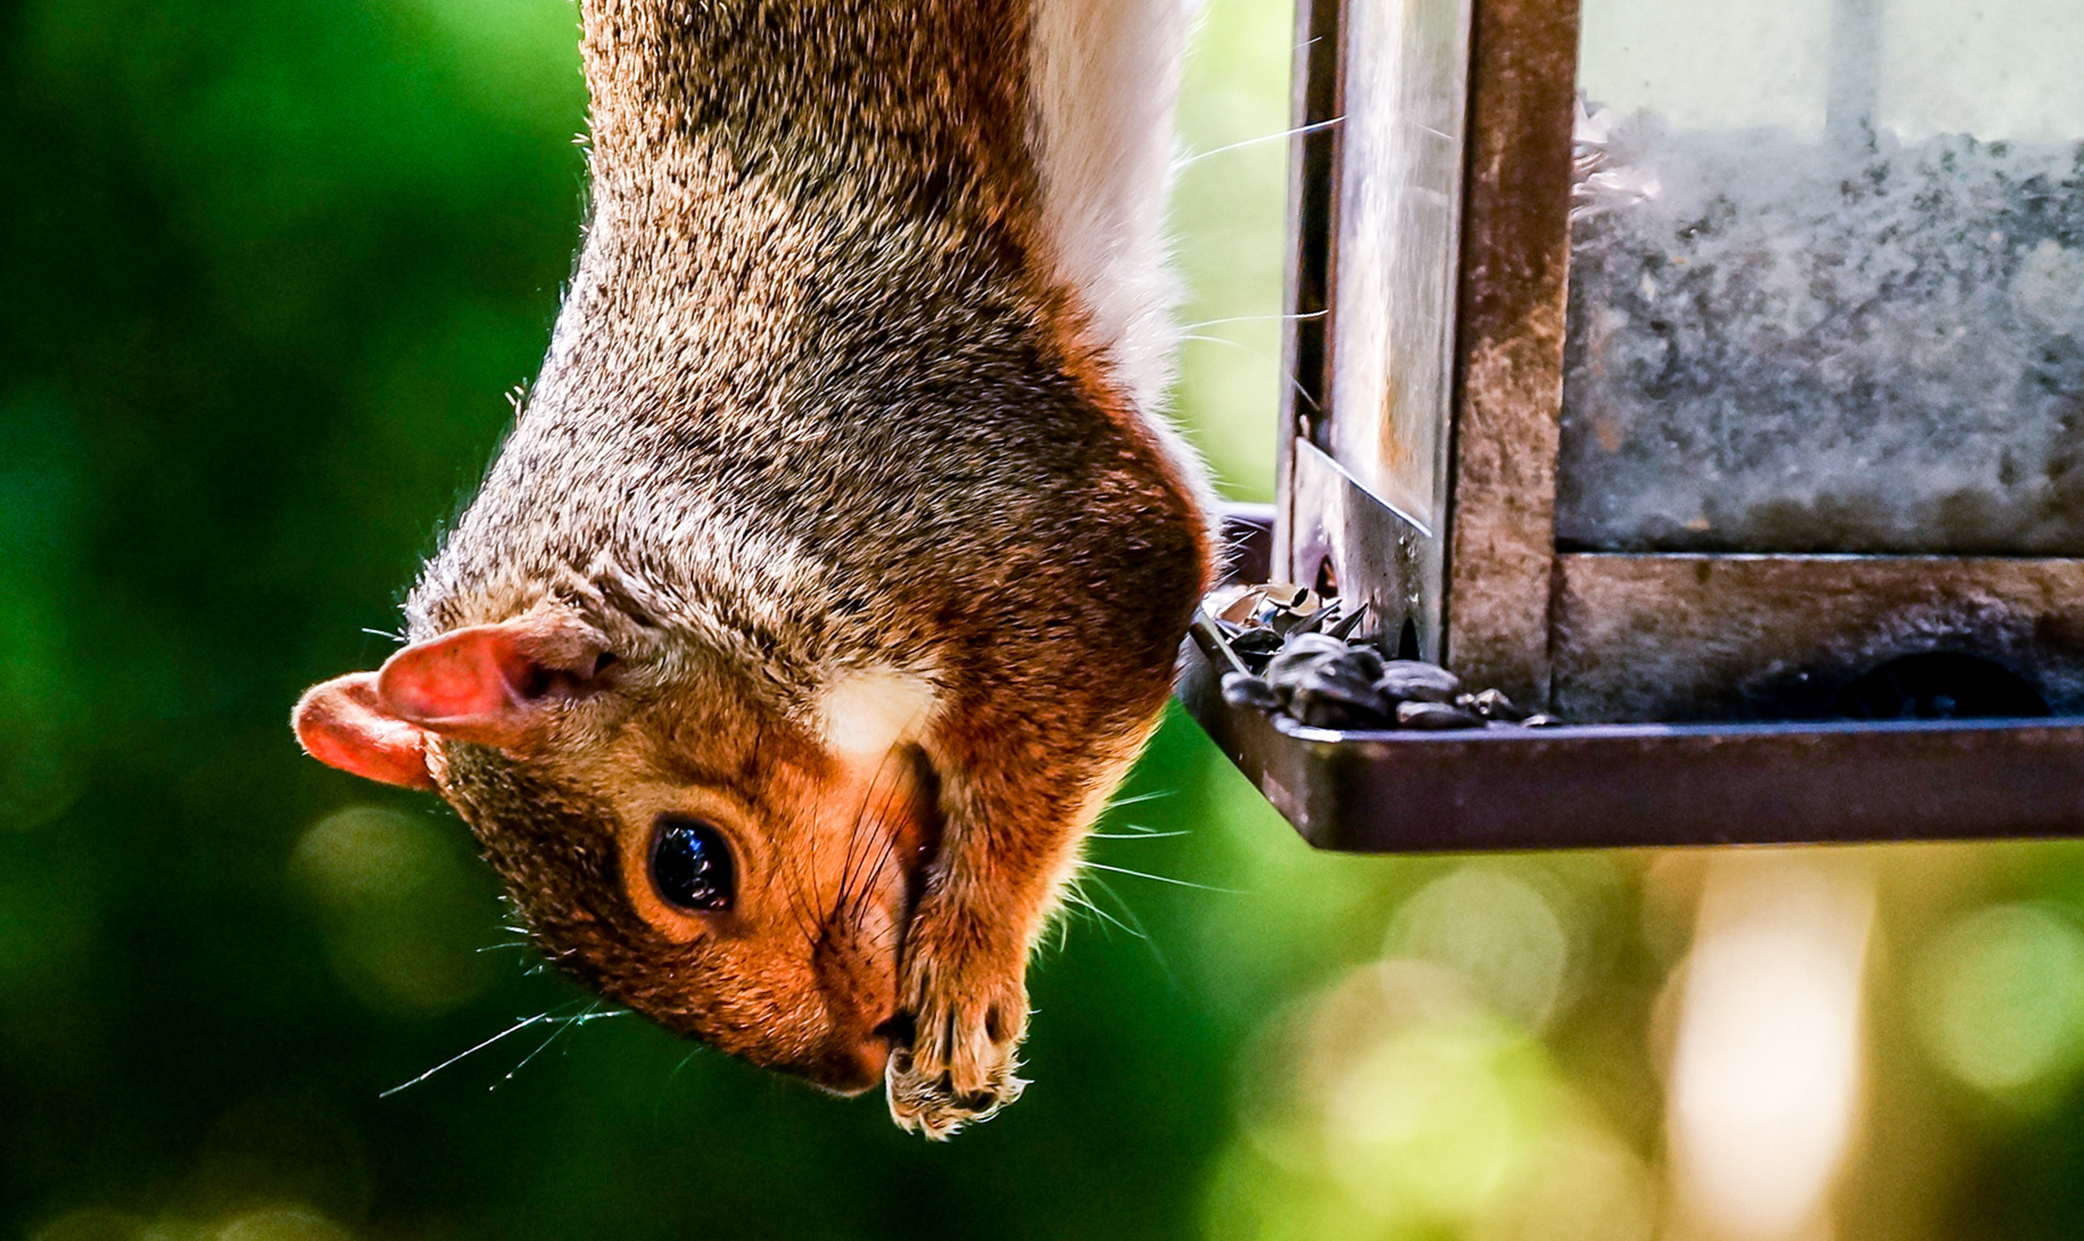 Squirrel hanging upside down on a bird feeder and eating bird seed